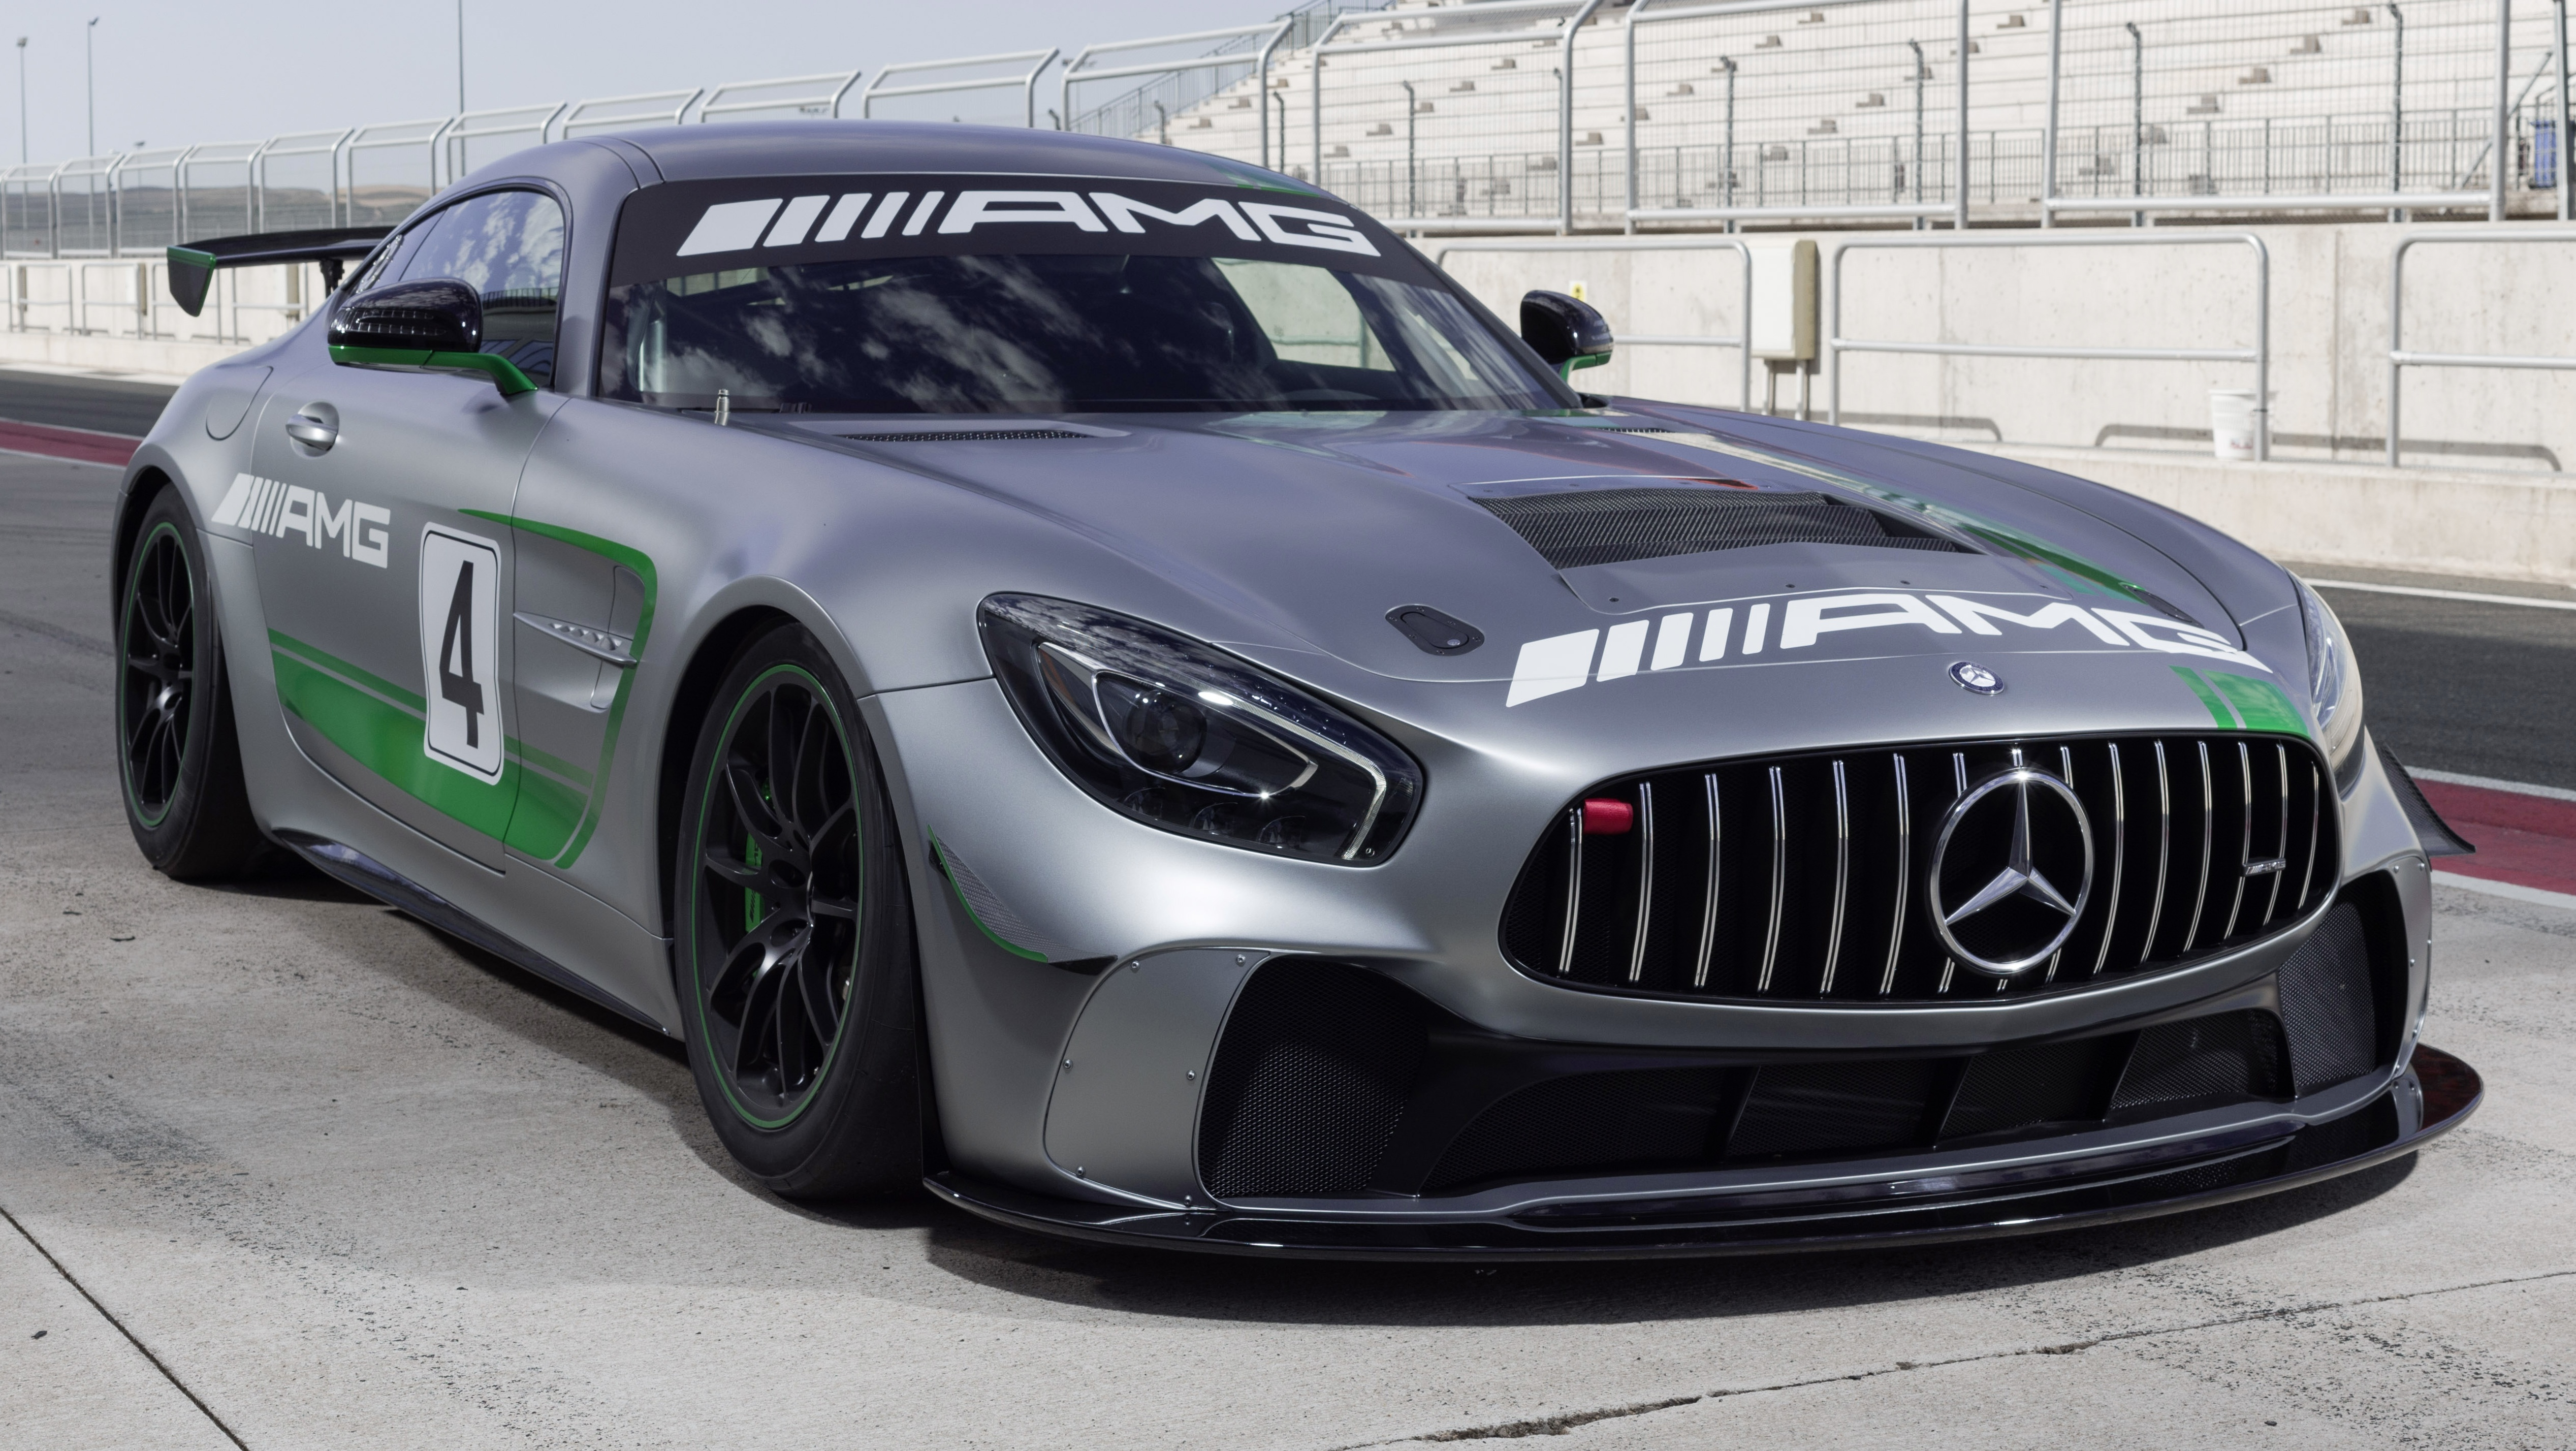 Mercedes amg gt4 entry level race car unveiled for Mercedes benz race